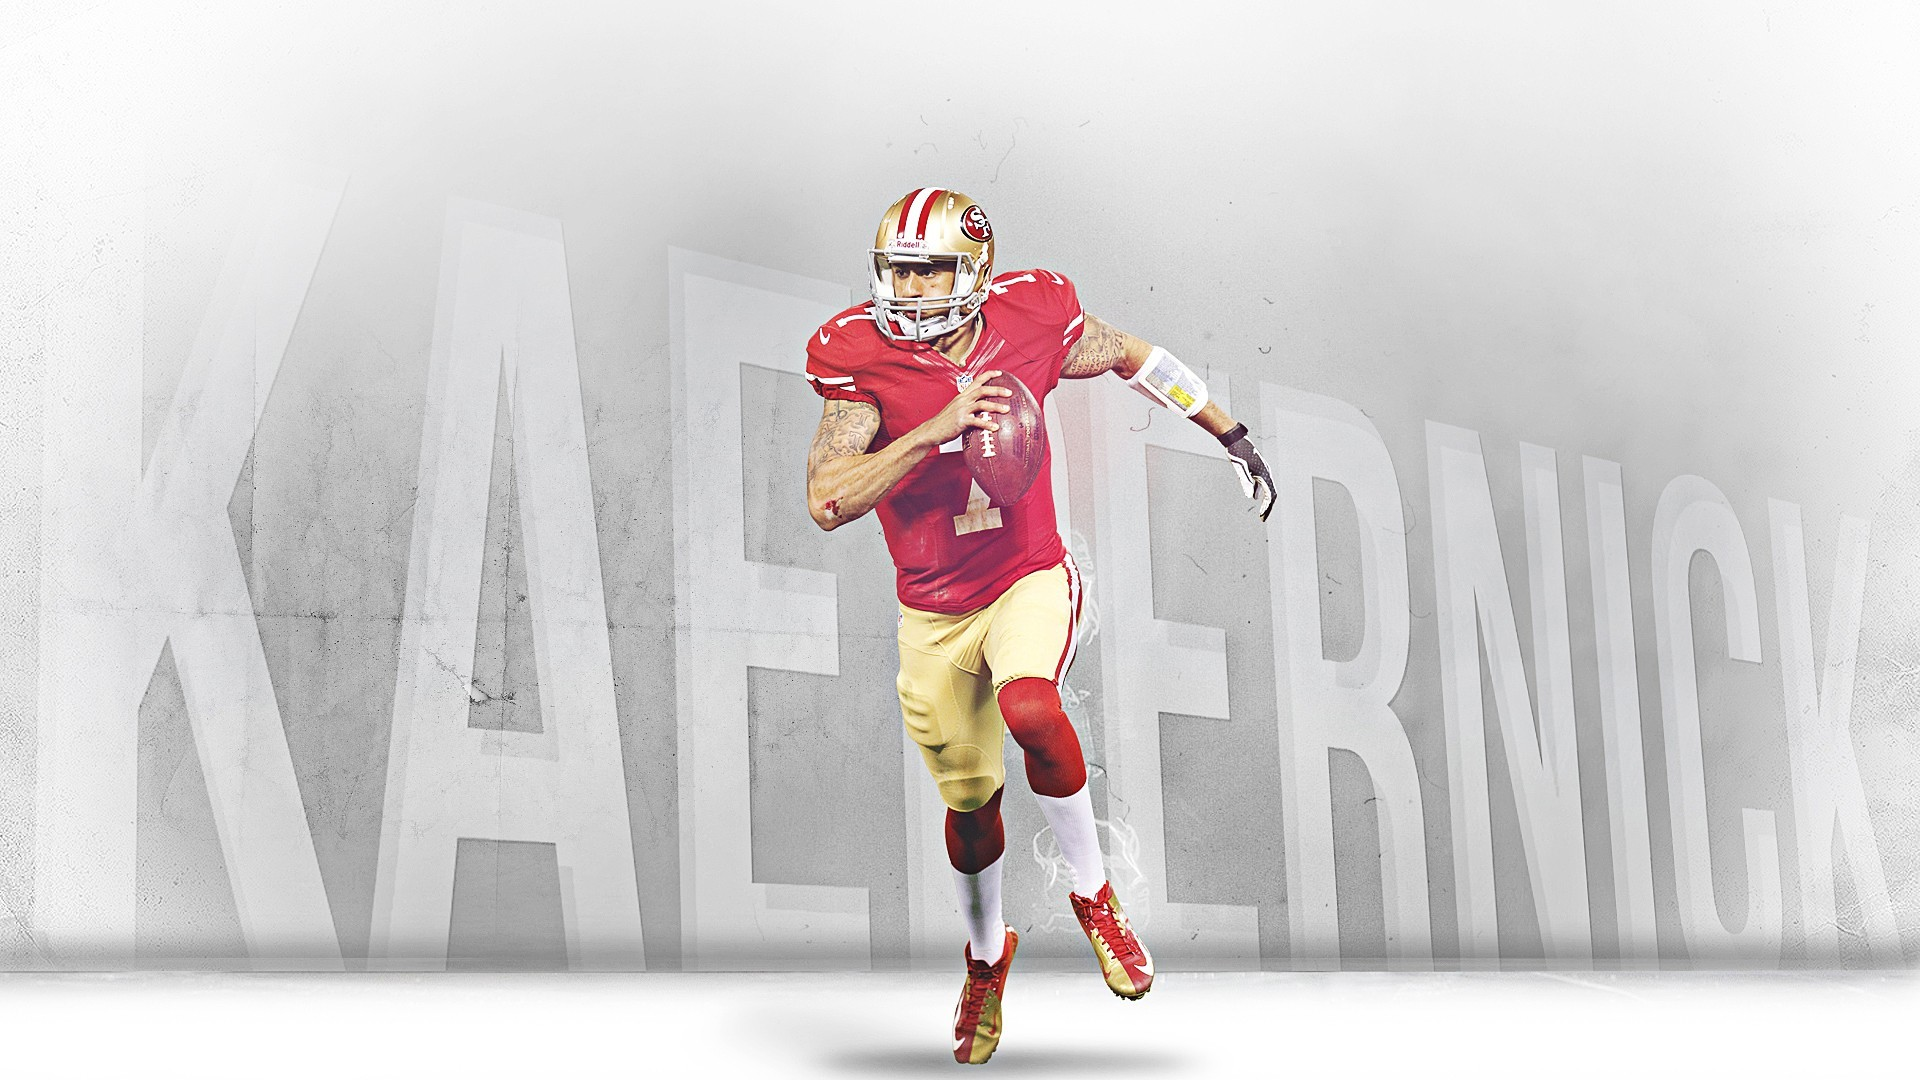 Colin kaepernick wallpaper 9063 PC en 1920x1080